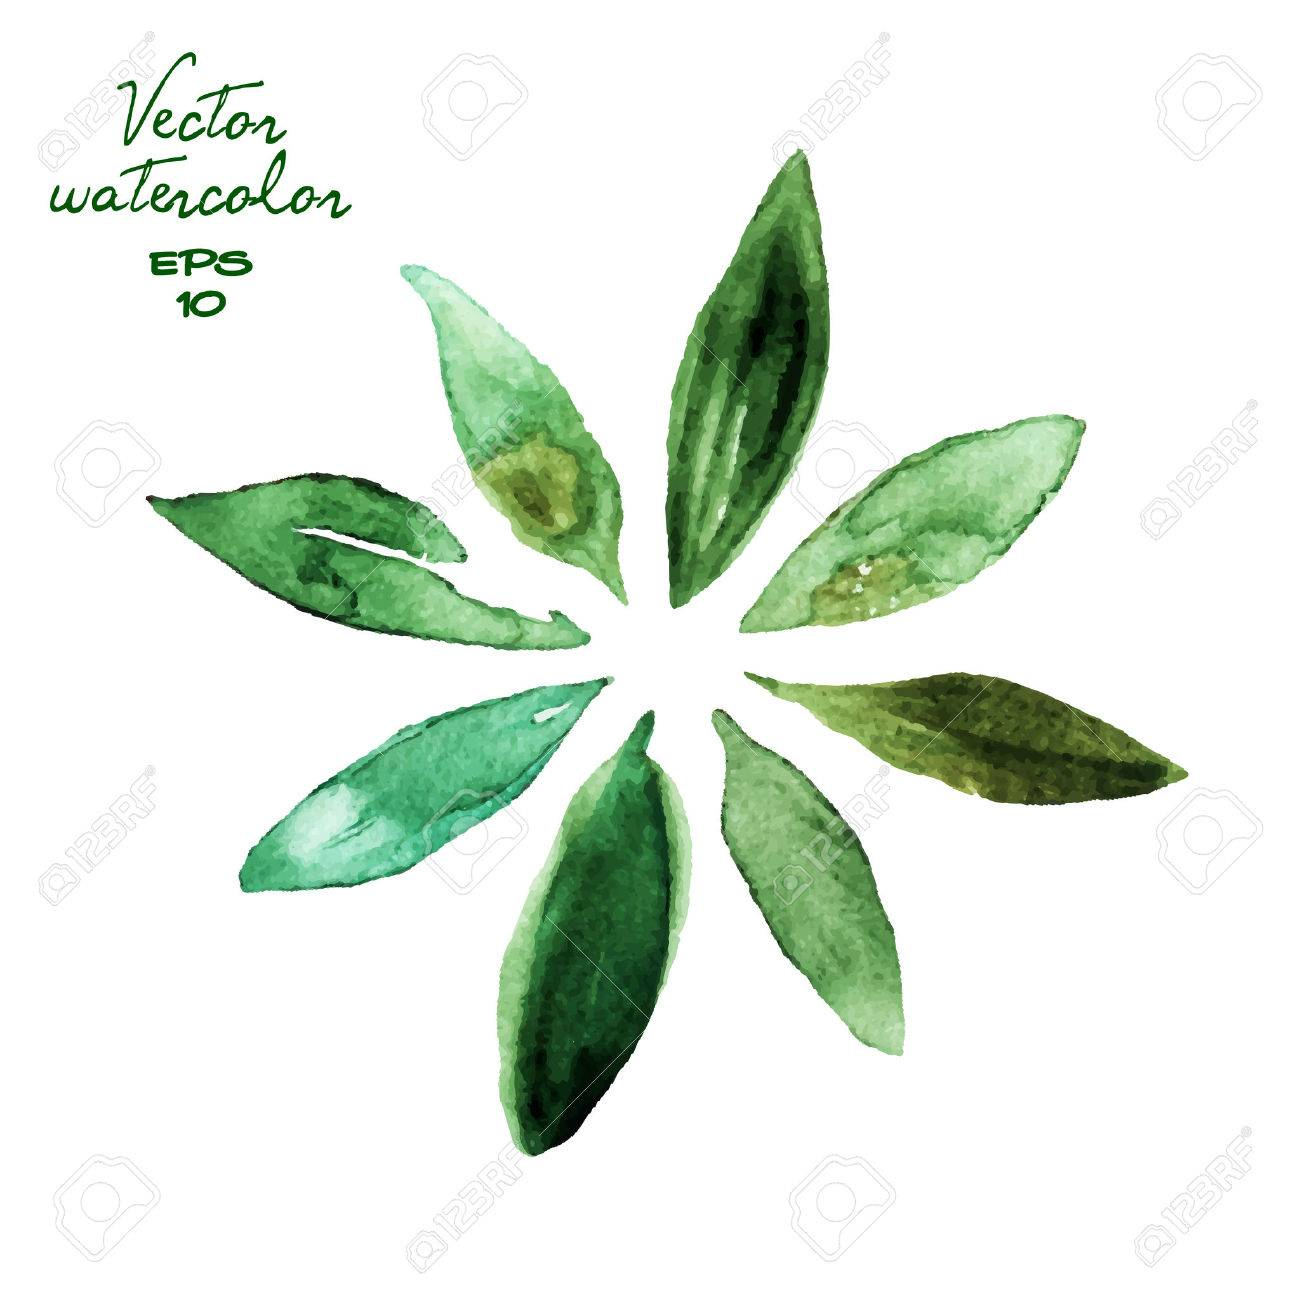 Set of green watercolor leaves - 43225014